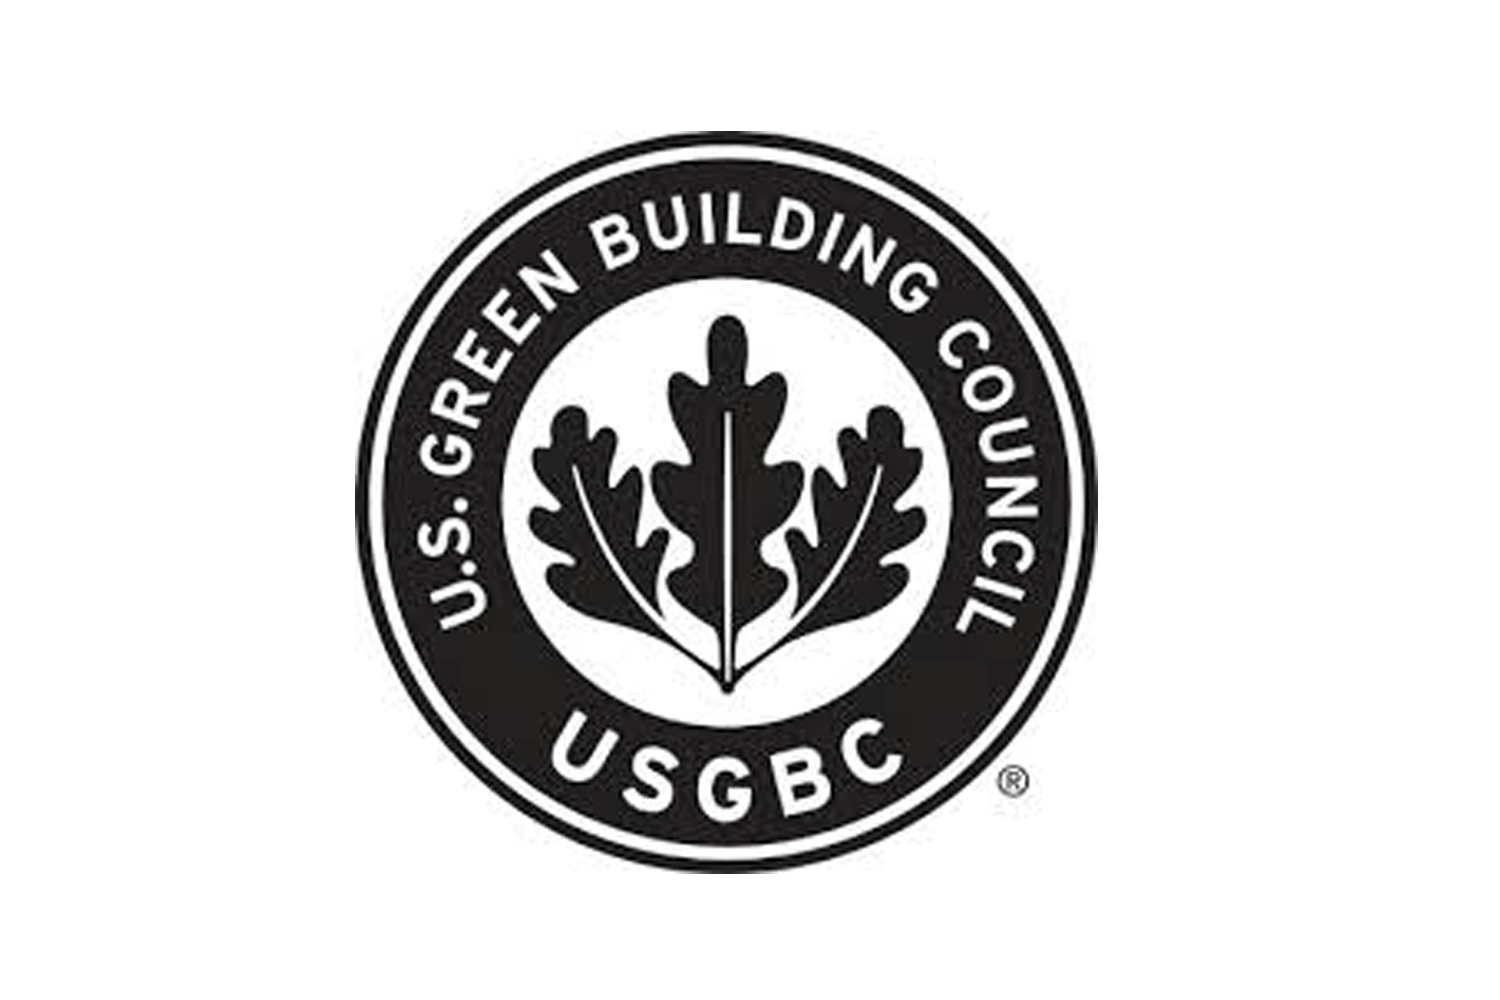 Resource_USGBC.jpg